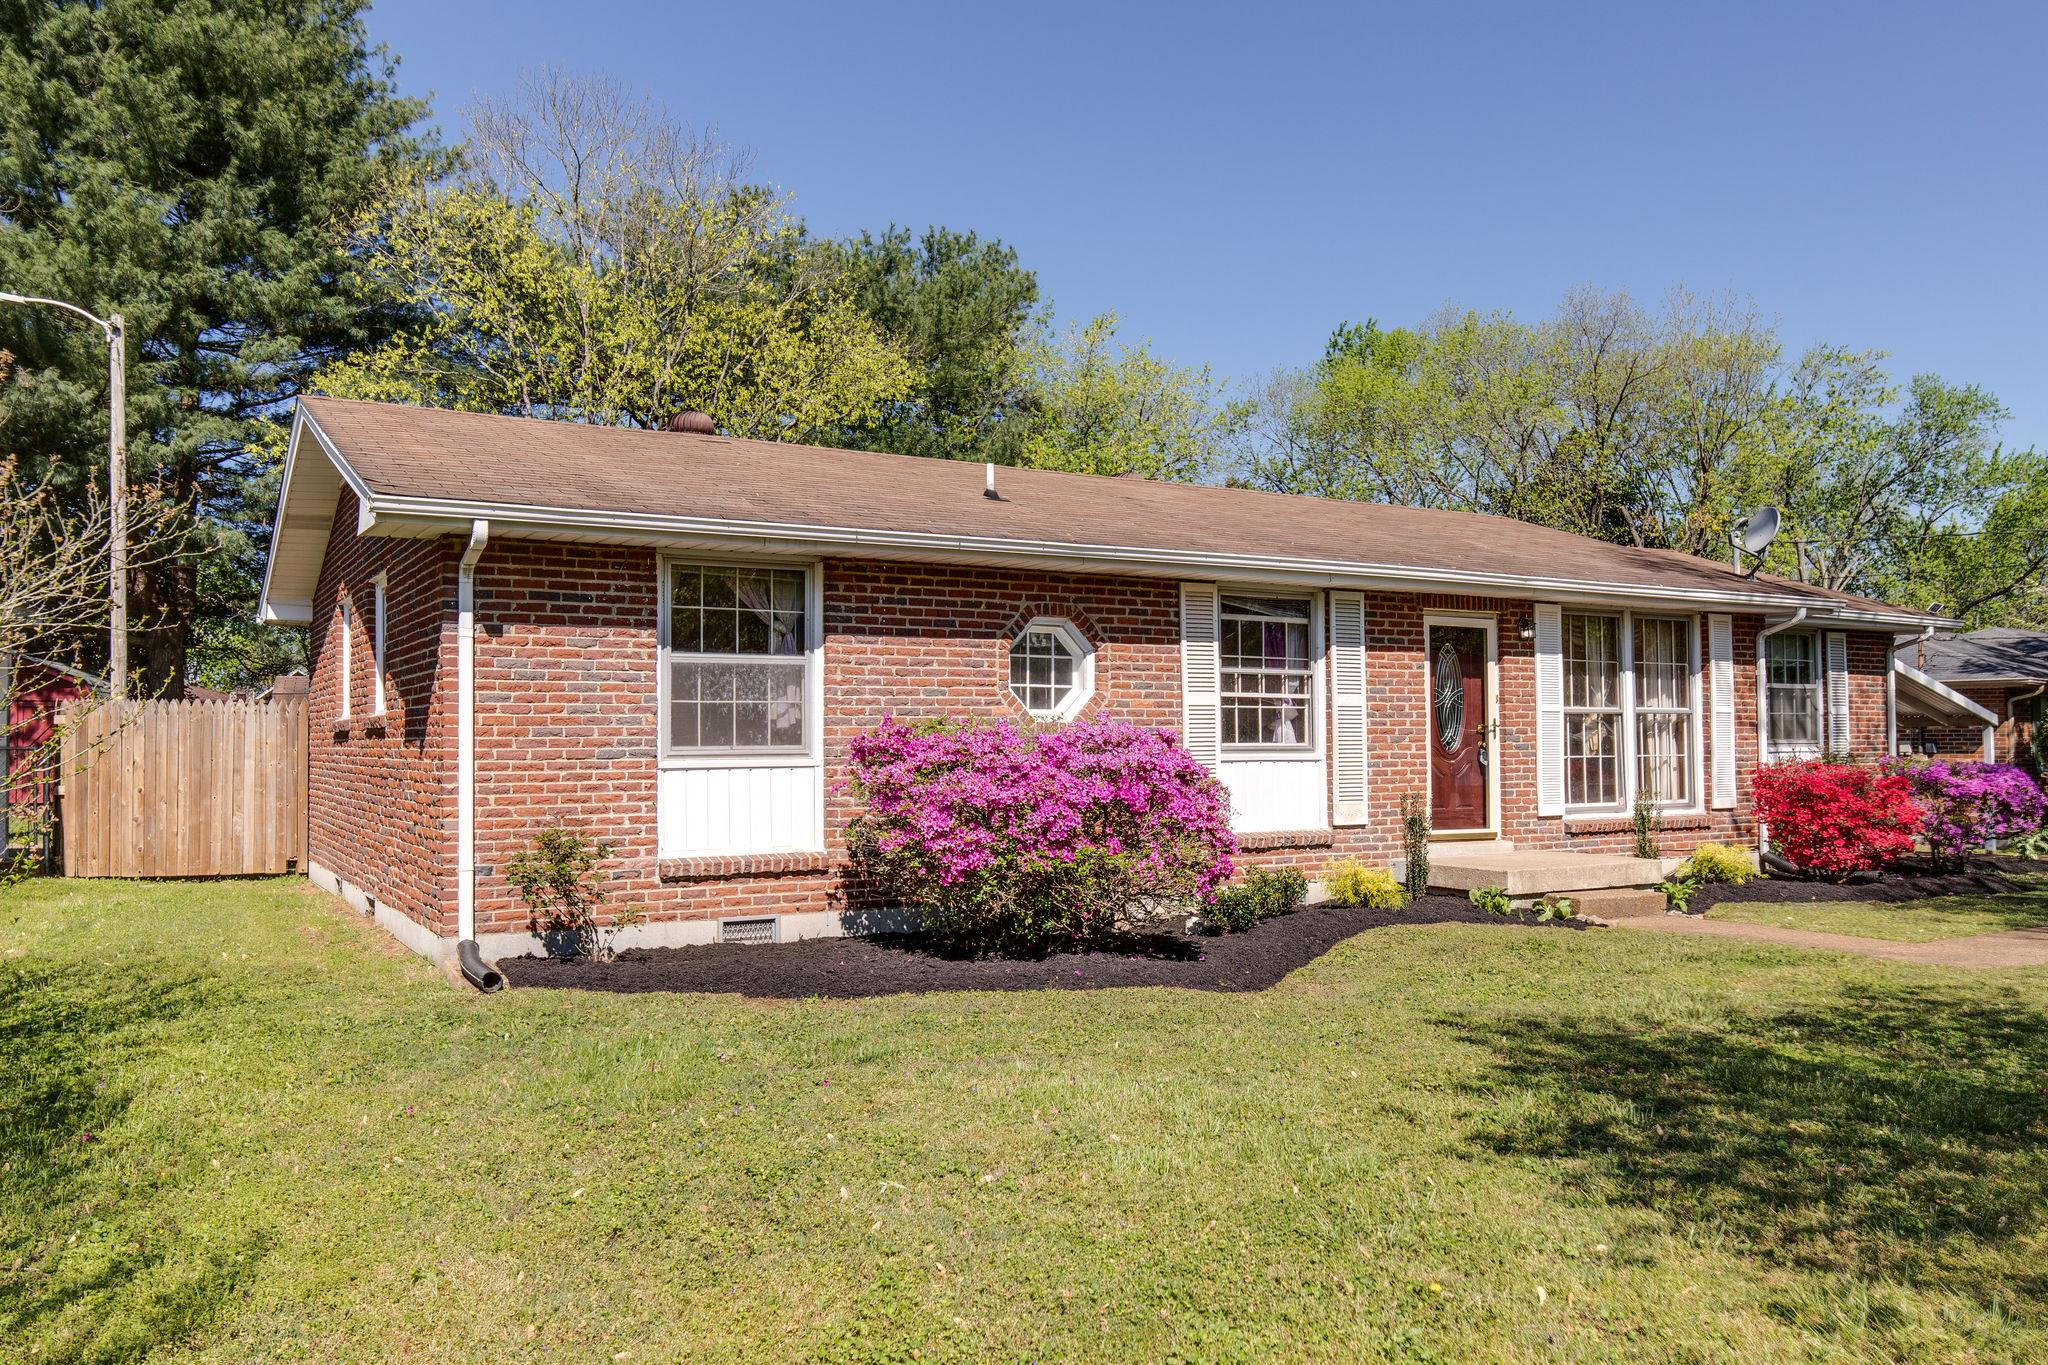 7005 Bonnalake Dr, Hermitage in Davidson County County, TN 37076 Home for Sale